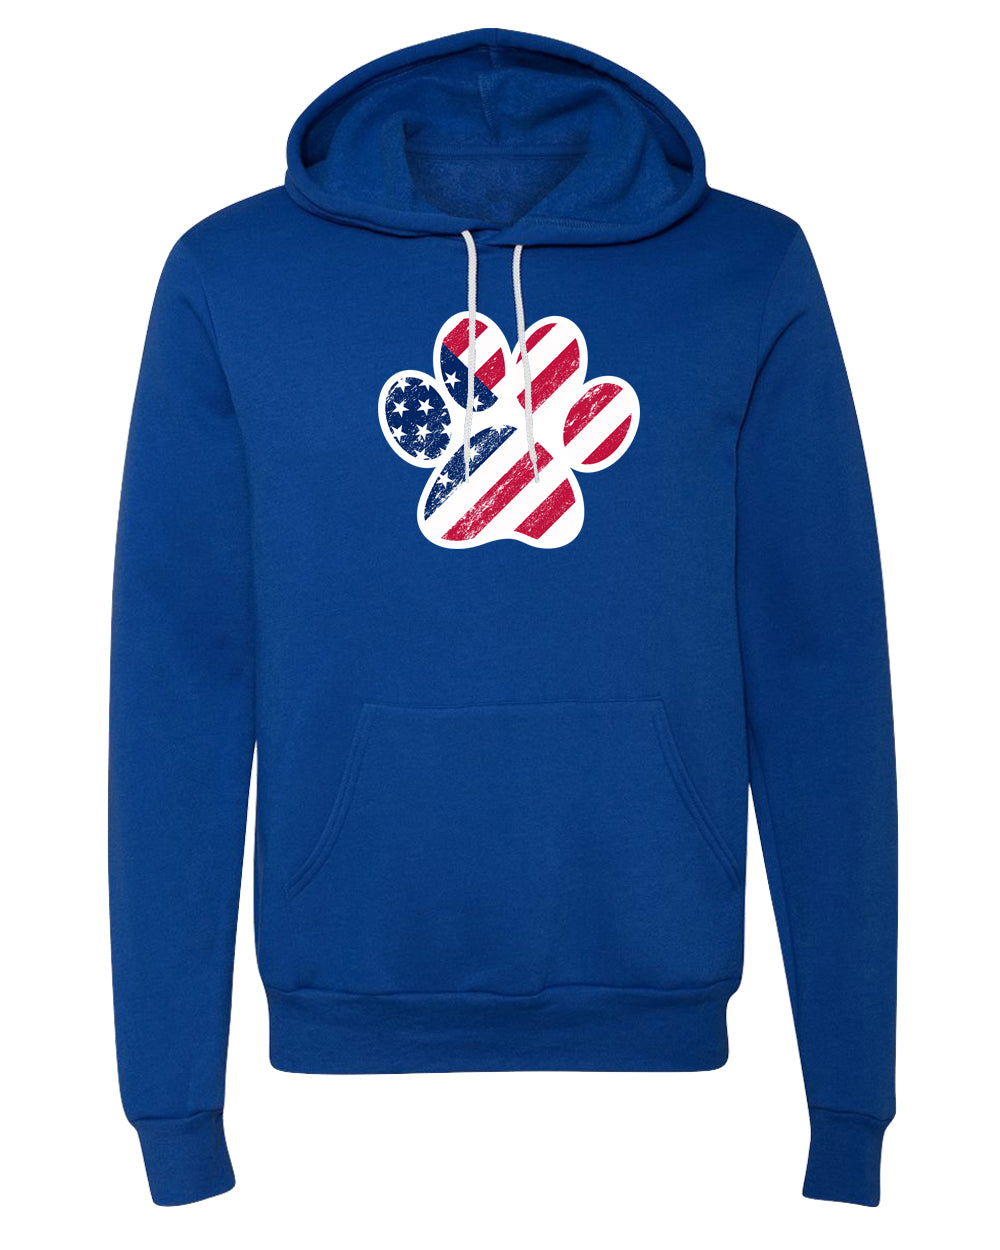 Sweater - American Flag In Dog Paw, Fatriotic Sweatshirts, 4th Of July Hoodies